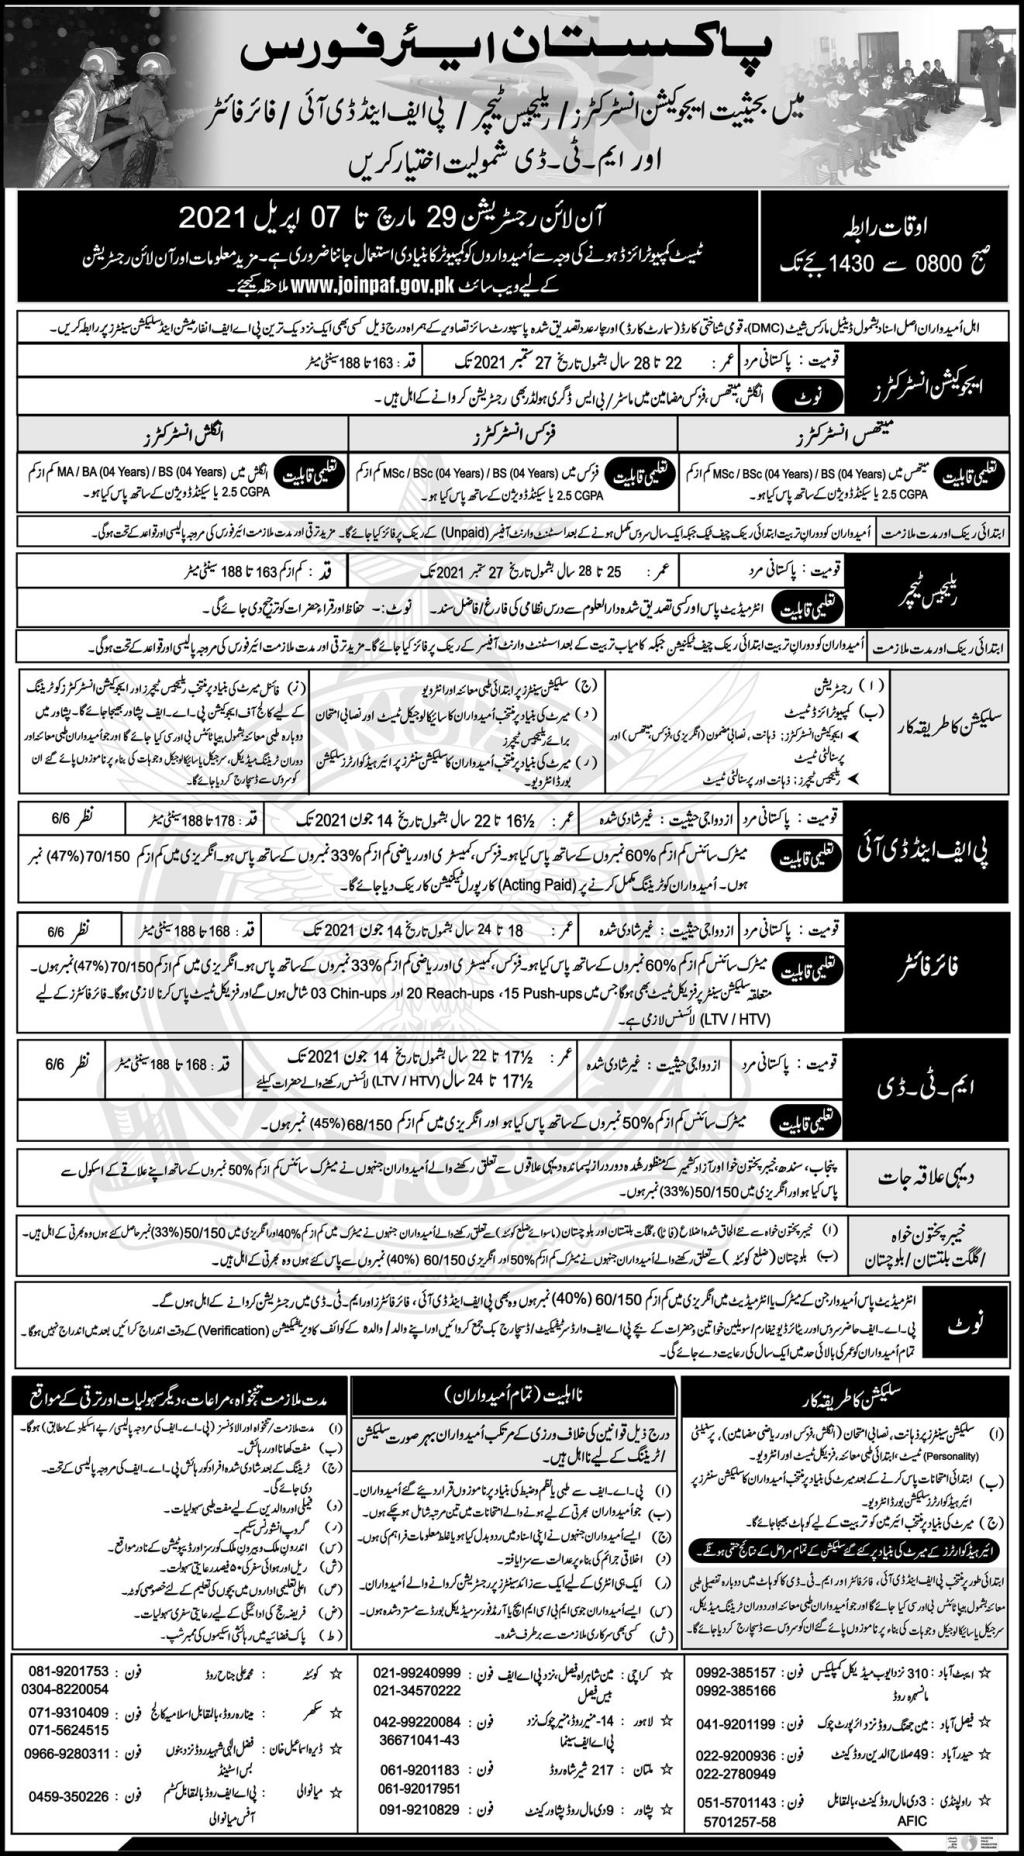 Teaching & Fire Fighter Jobs in Pakistan Air Force PAF